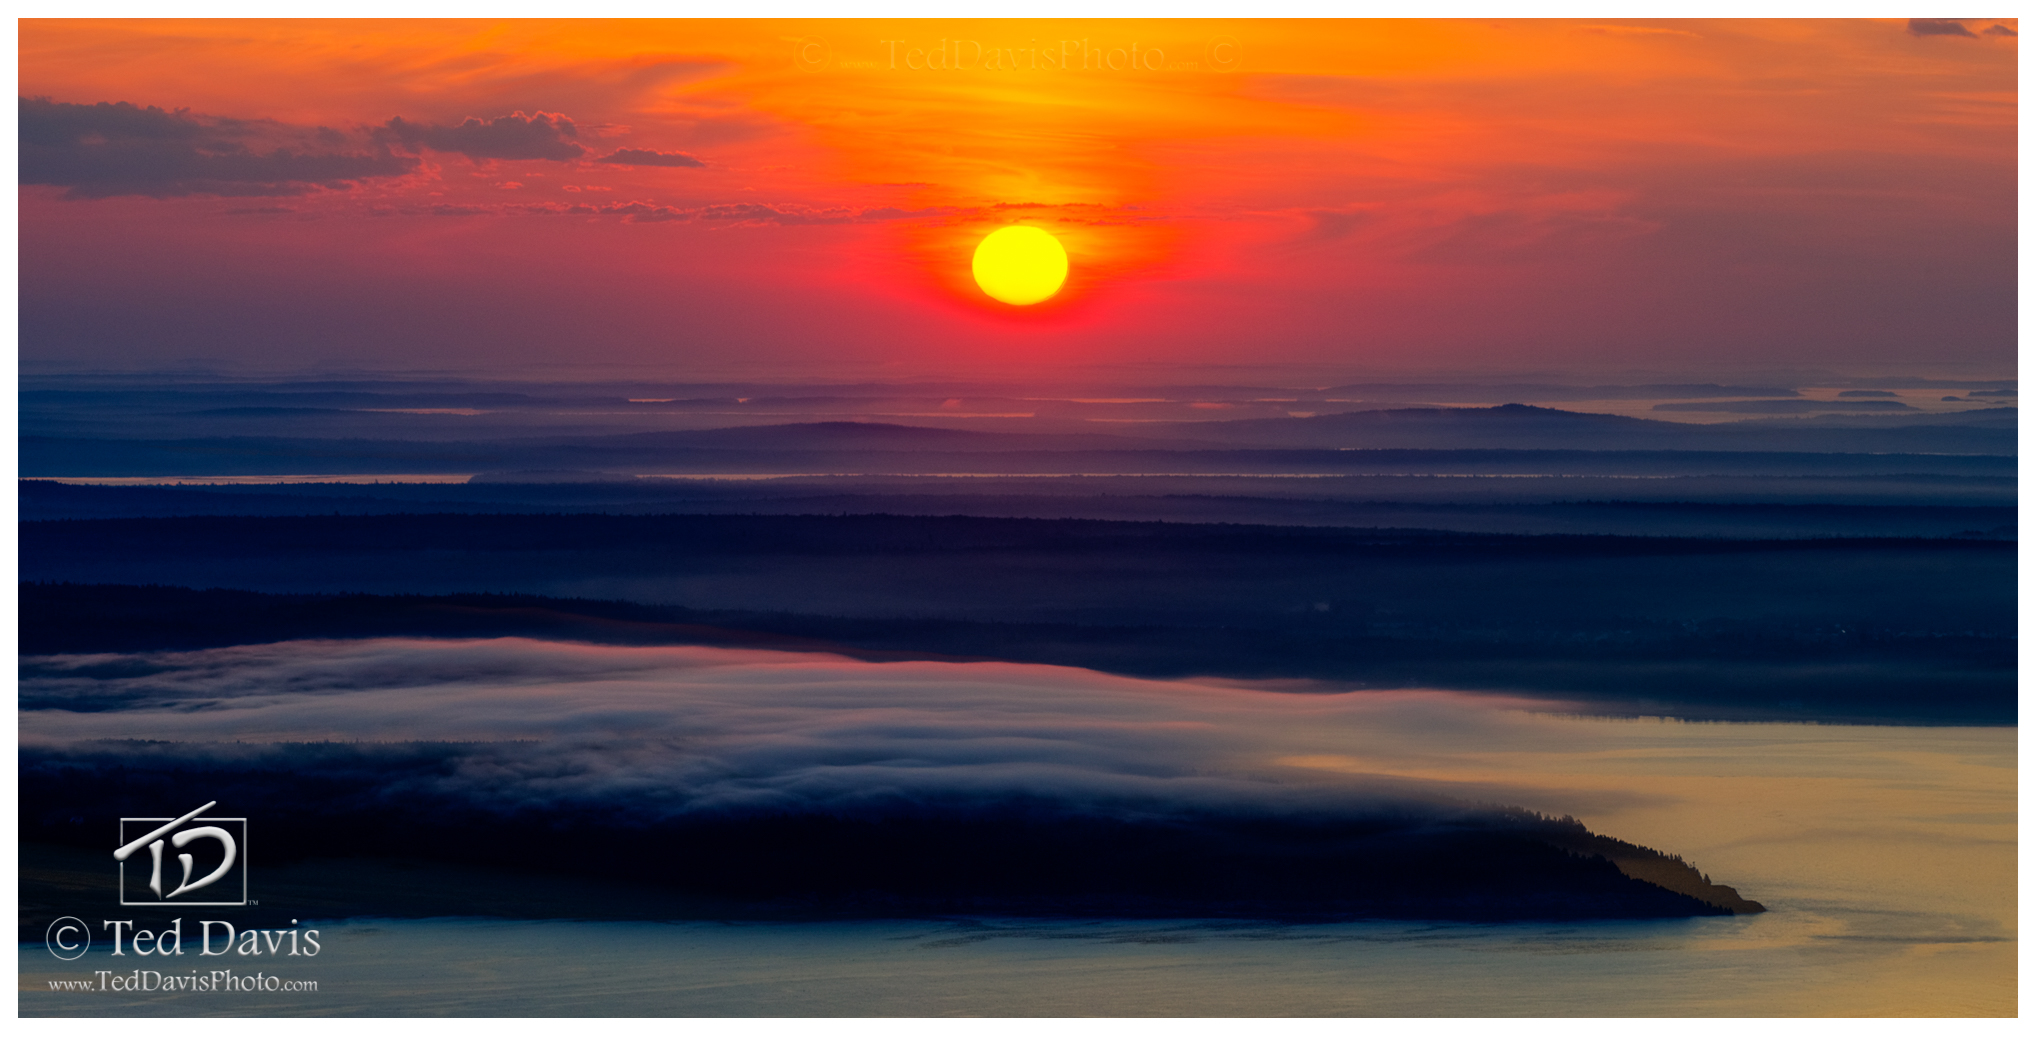 Limited Edition of 200 A long shot of a rising sun over mist shrouded islands off the northern coast of Maine. Fantasy.